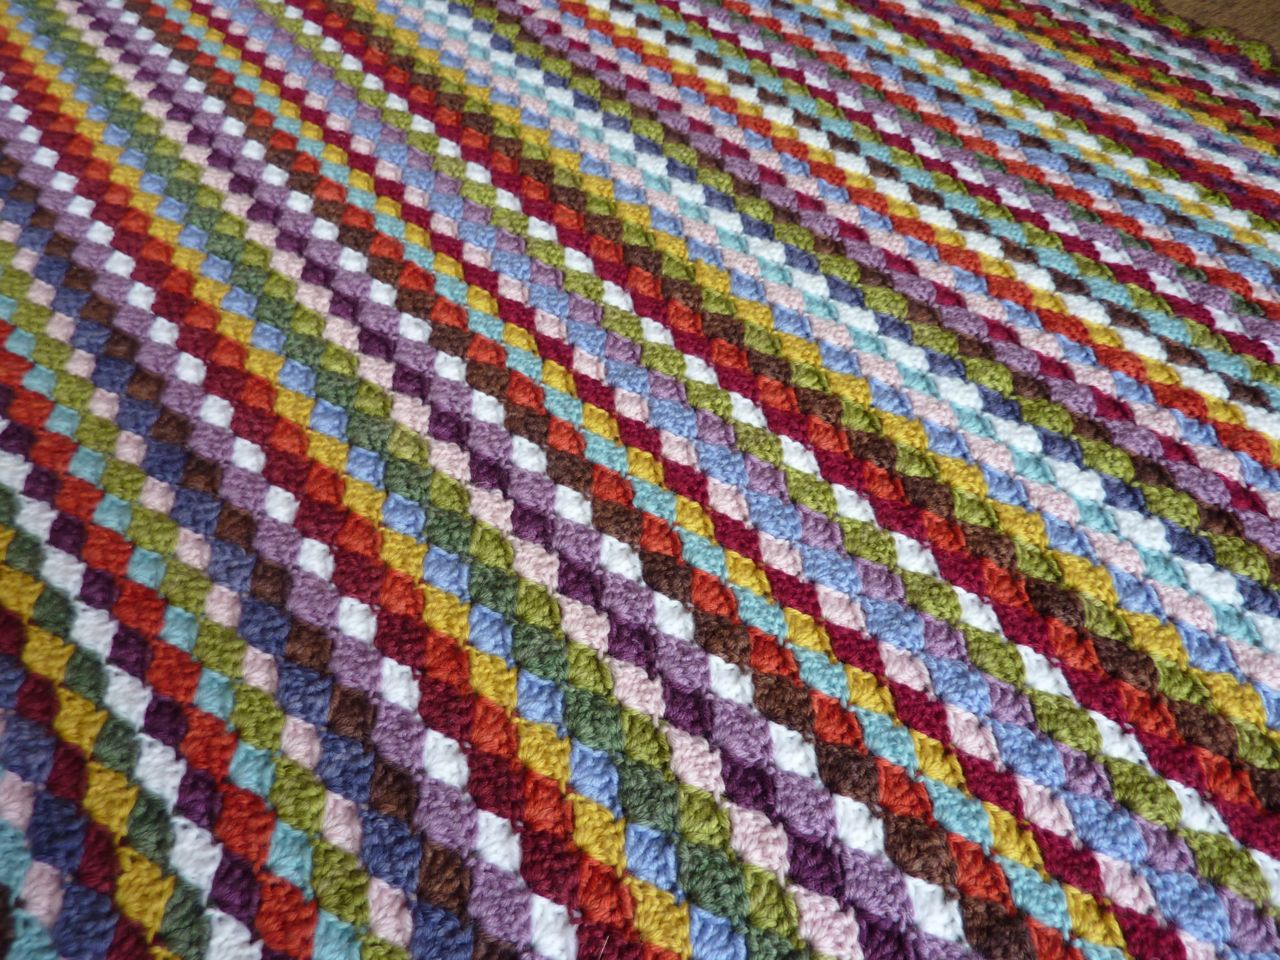 Awesome Baby Blanket Crocheted Edgings Pattern – Crochet Patterns Crochet Edging for Baby Blanket Patterns Of New 43 Pics Crochet Edging for Baby Blanket Patterns